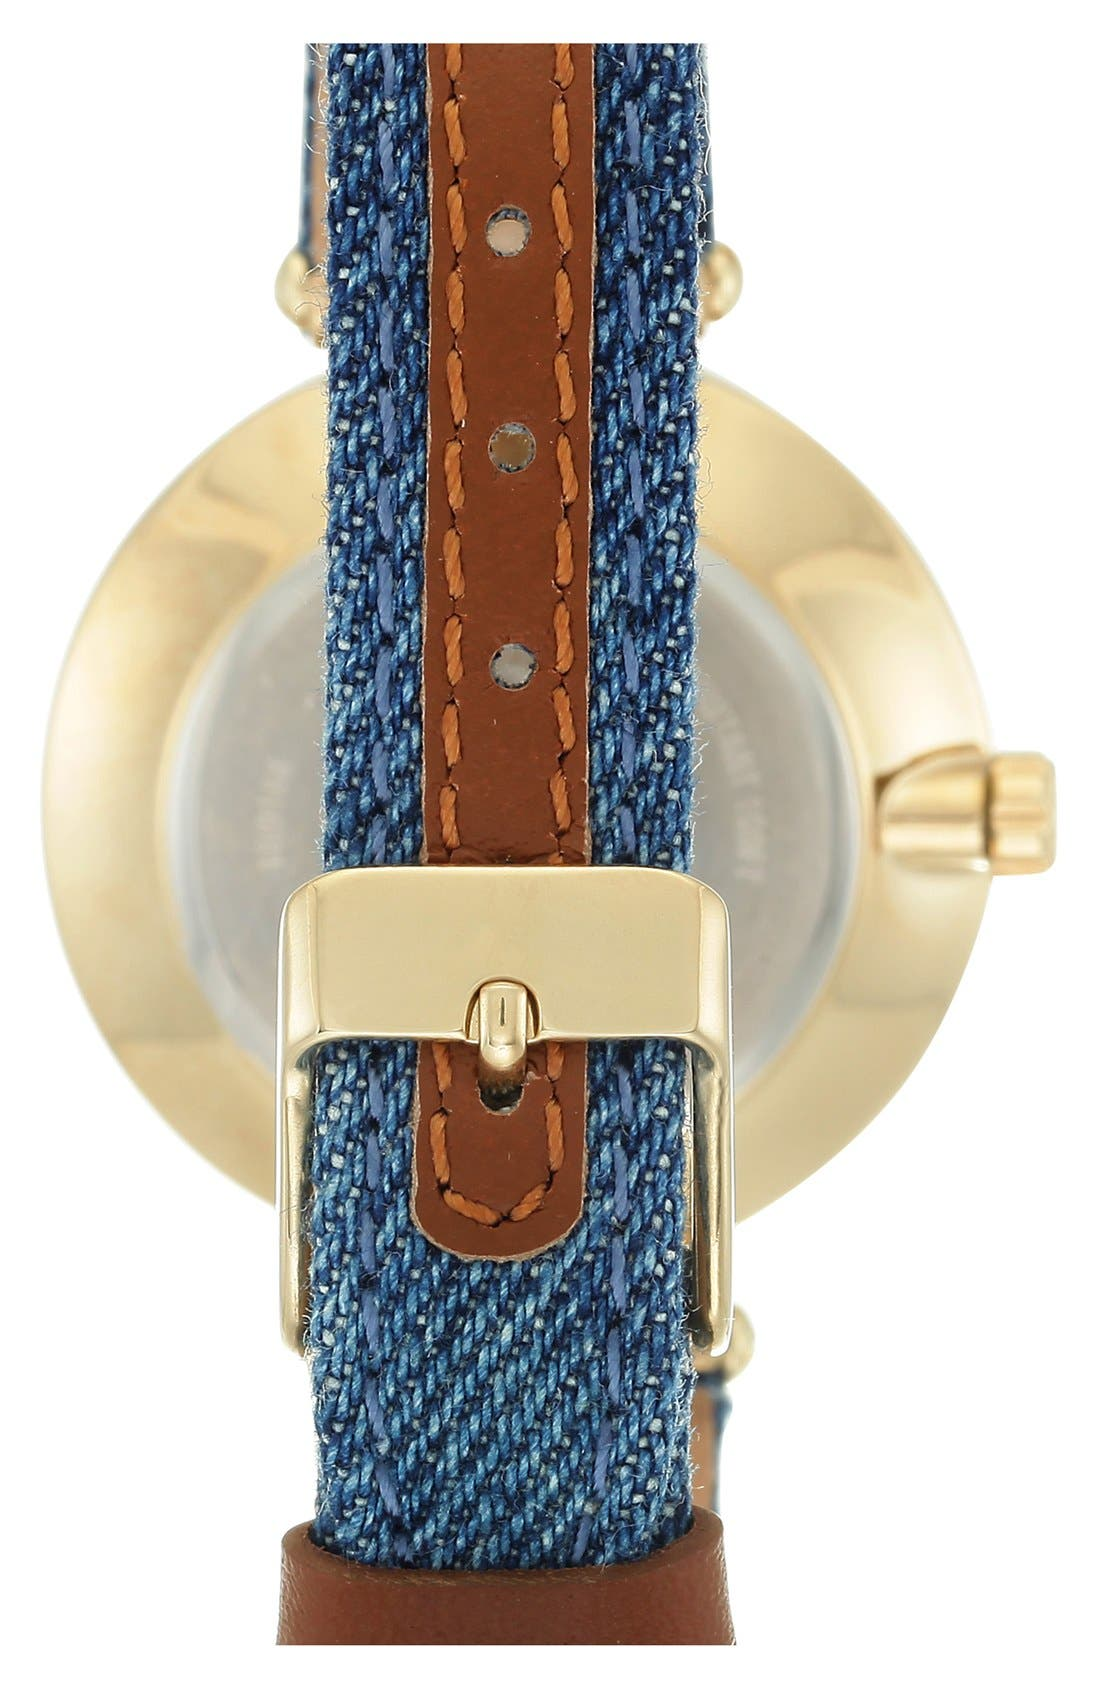 ANNE KLEIN, Denim Strap Watch, 34mm, Alternate thumbnail 2, color, 400